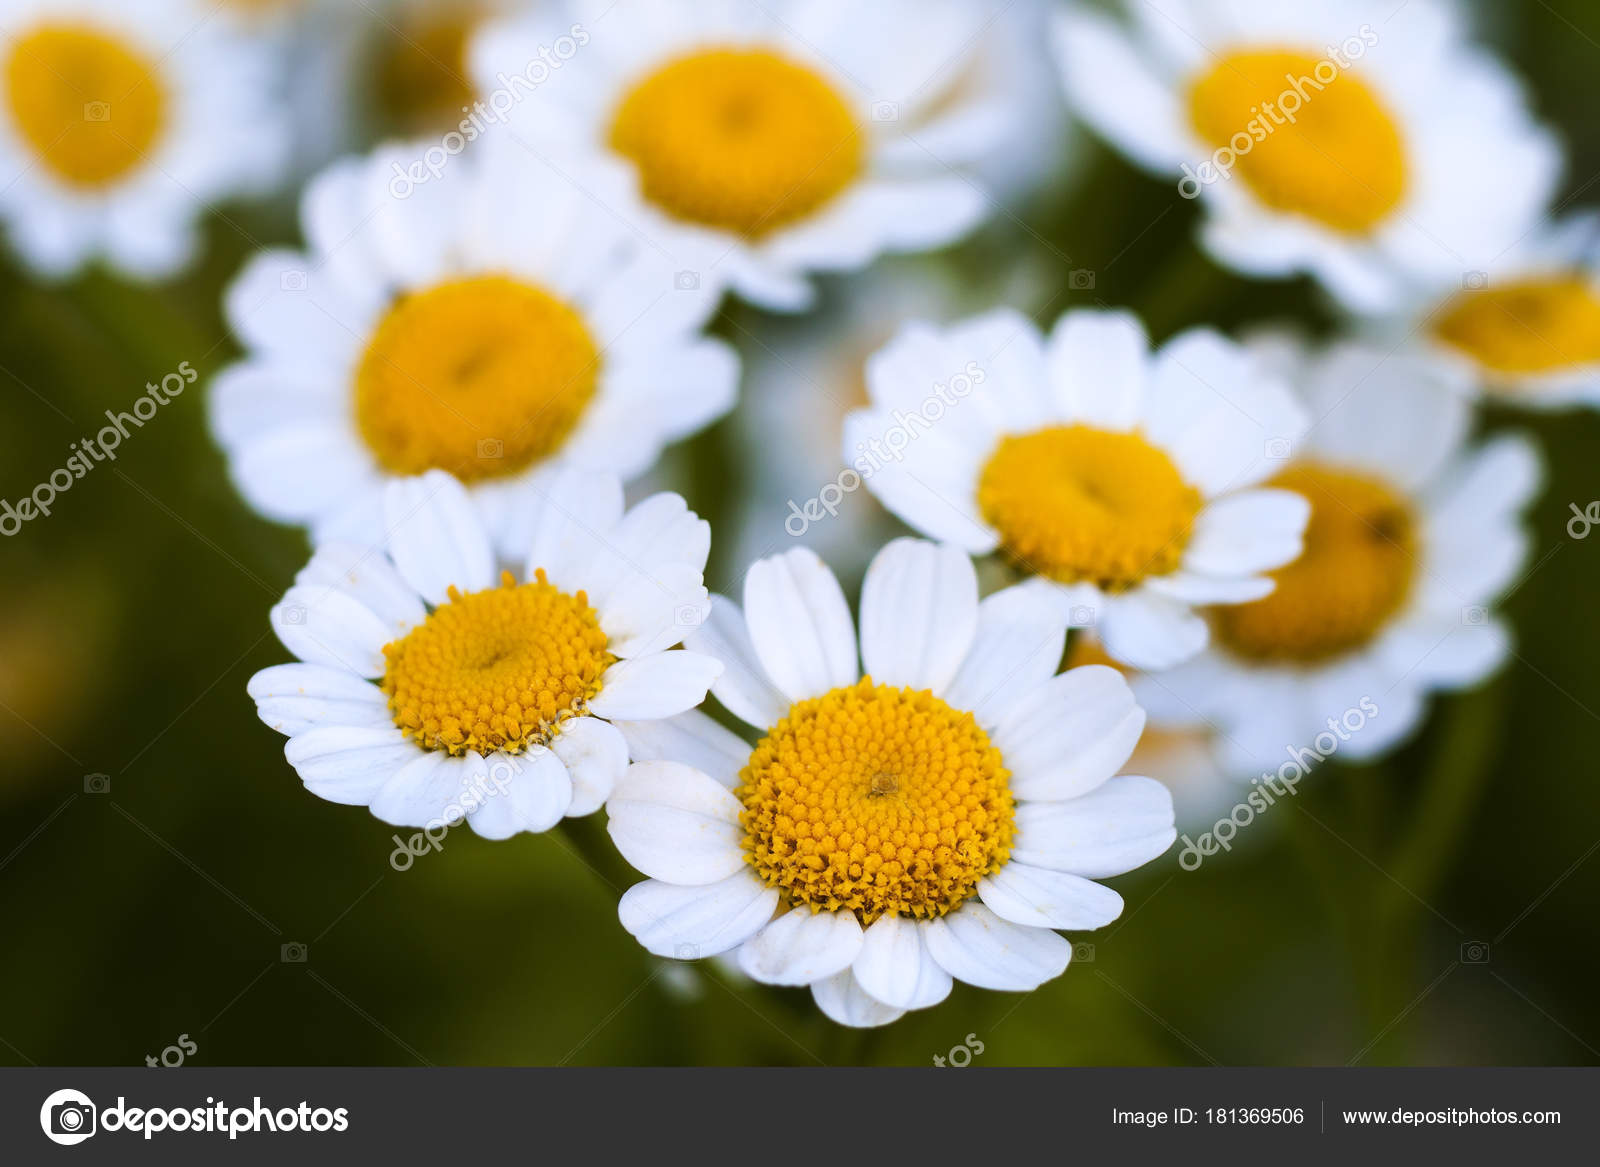 Close up little white daisy flowers stock photo bilanoli close up little white daisy flowers photo by bilanoli izmirmasajfo